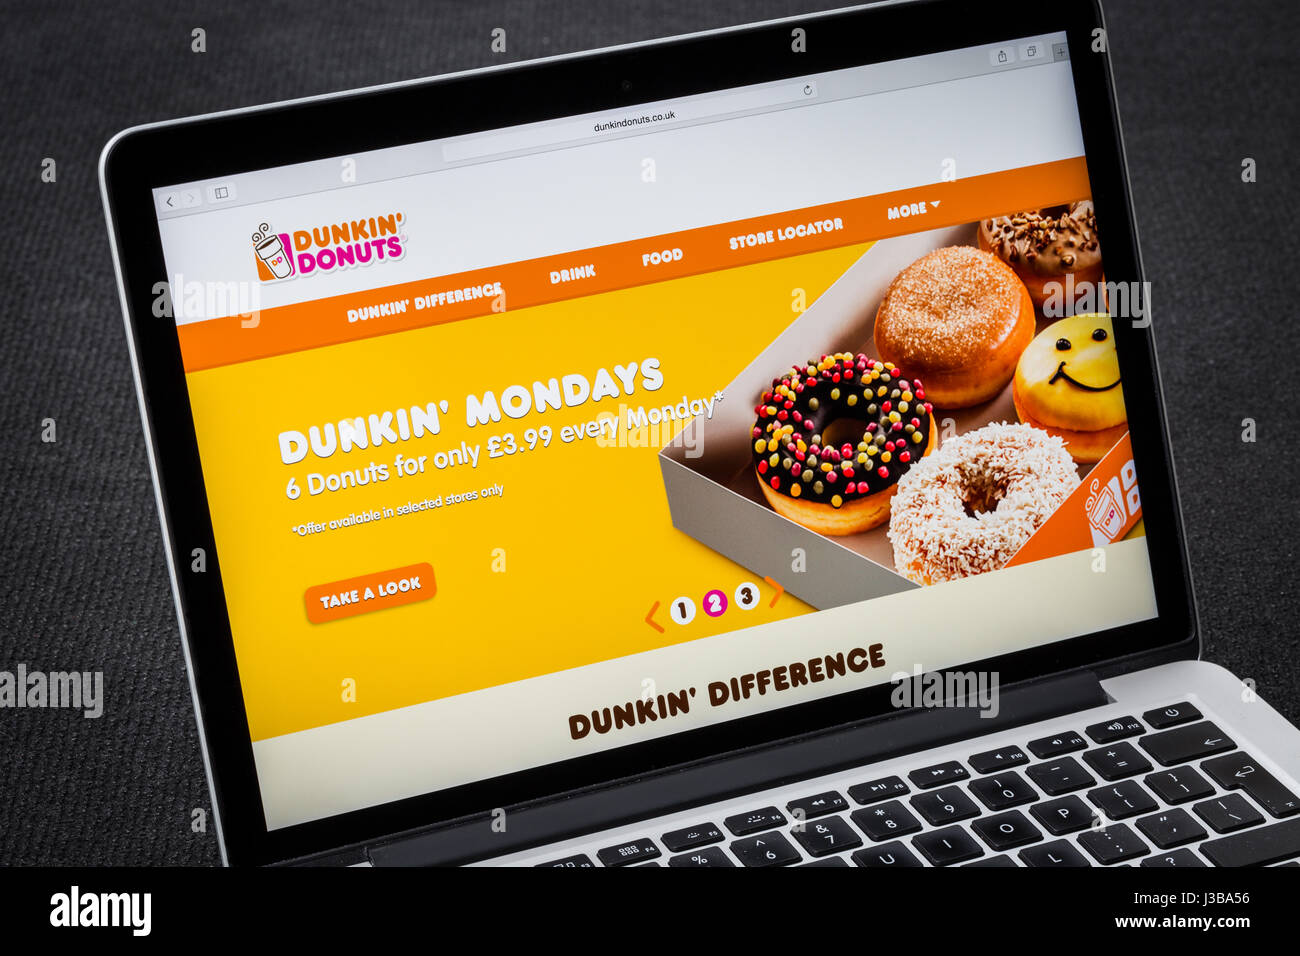 Dunkin Donuts website - Stock Image